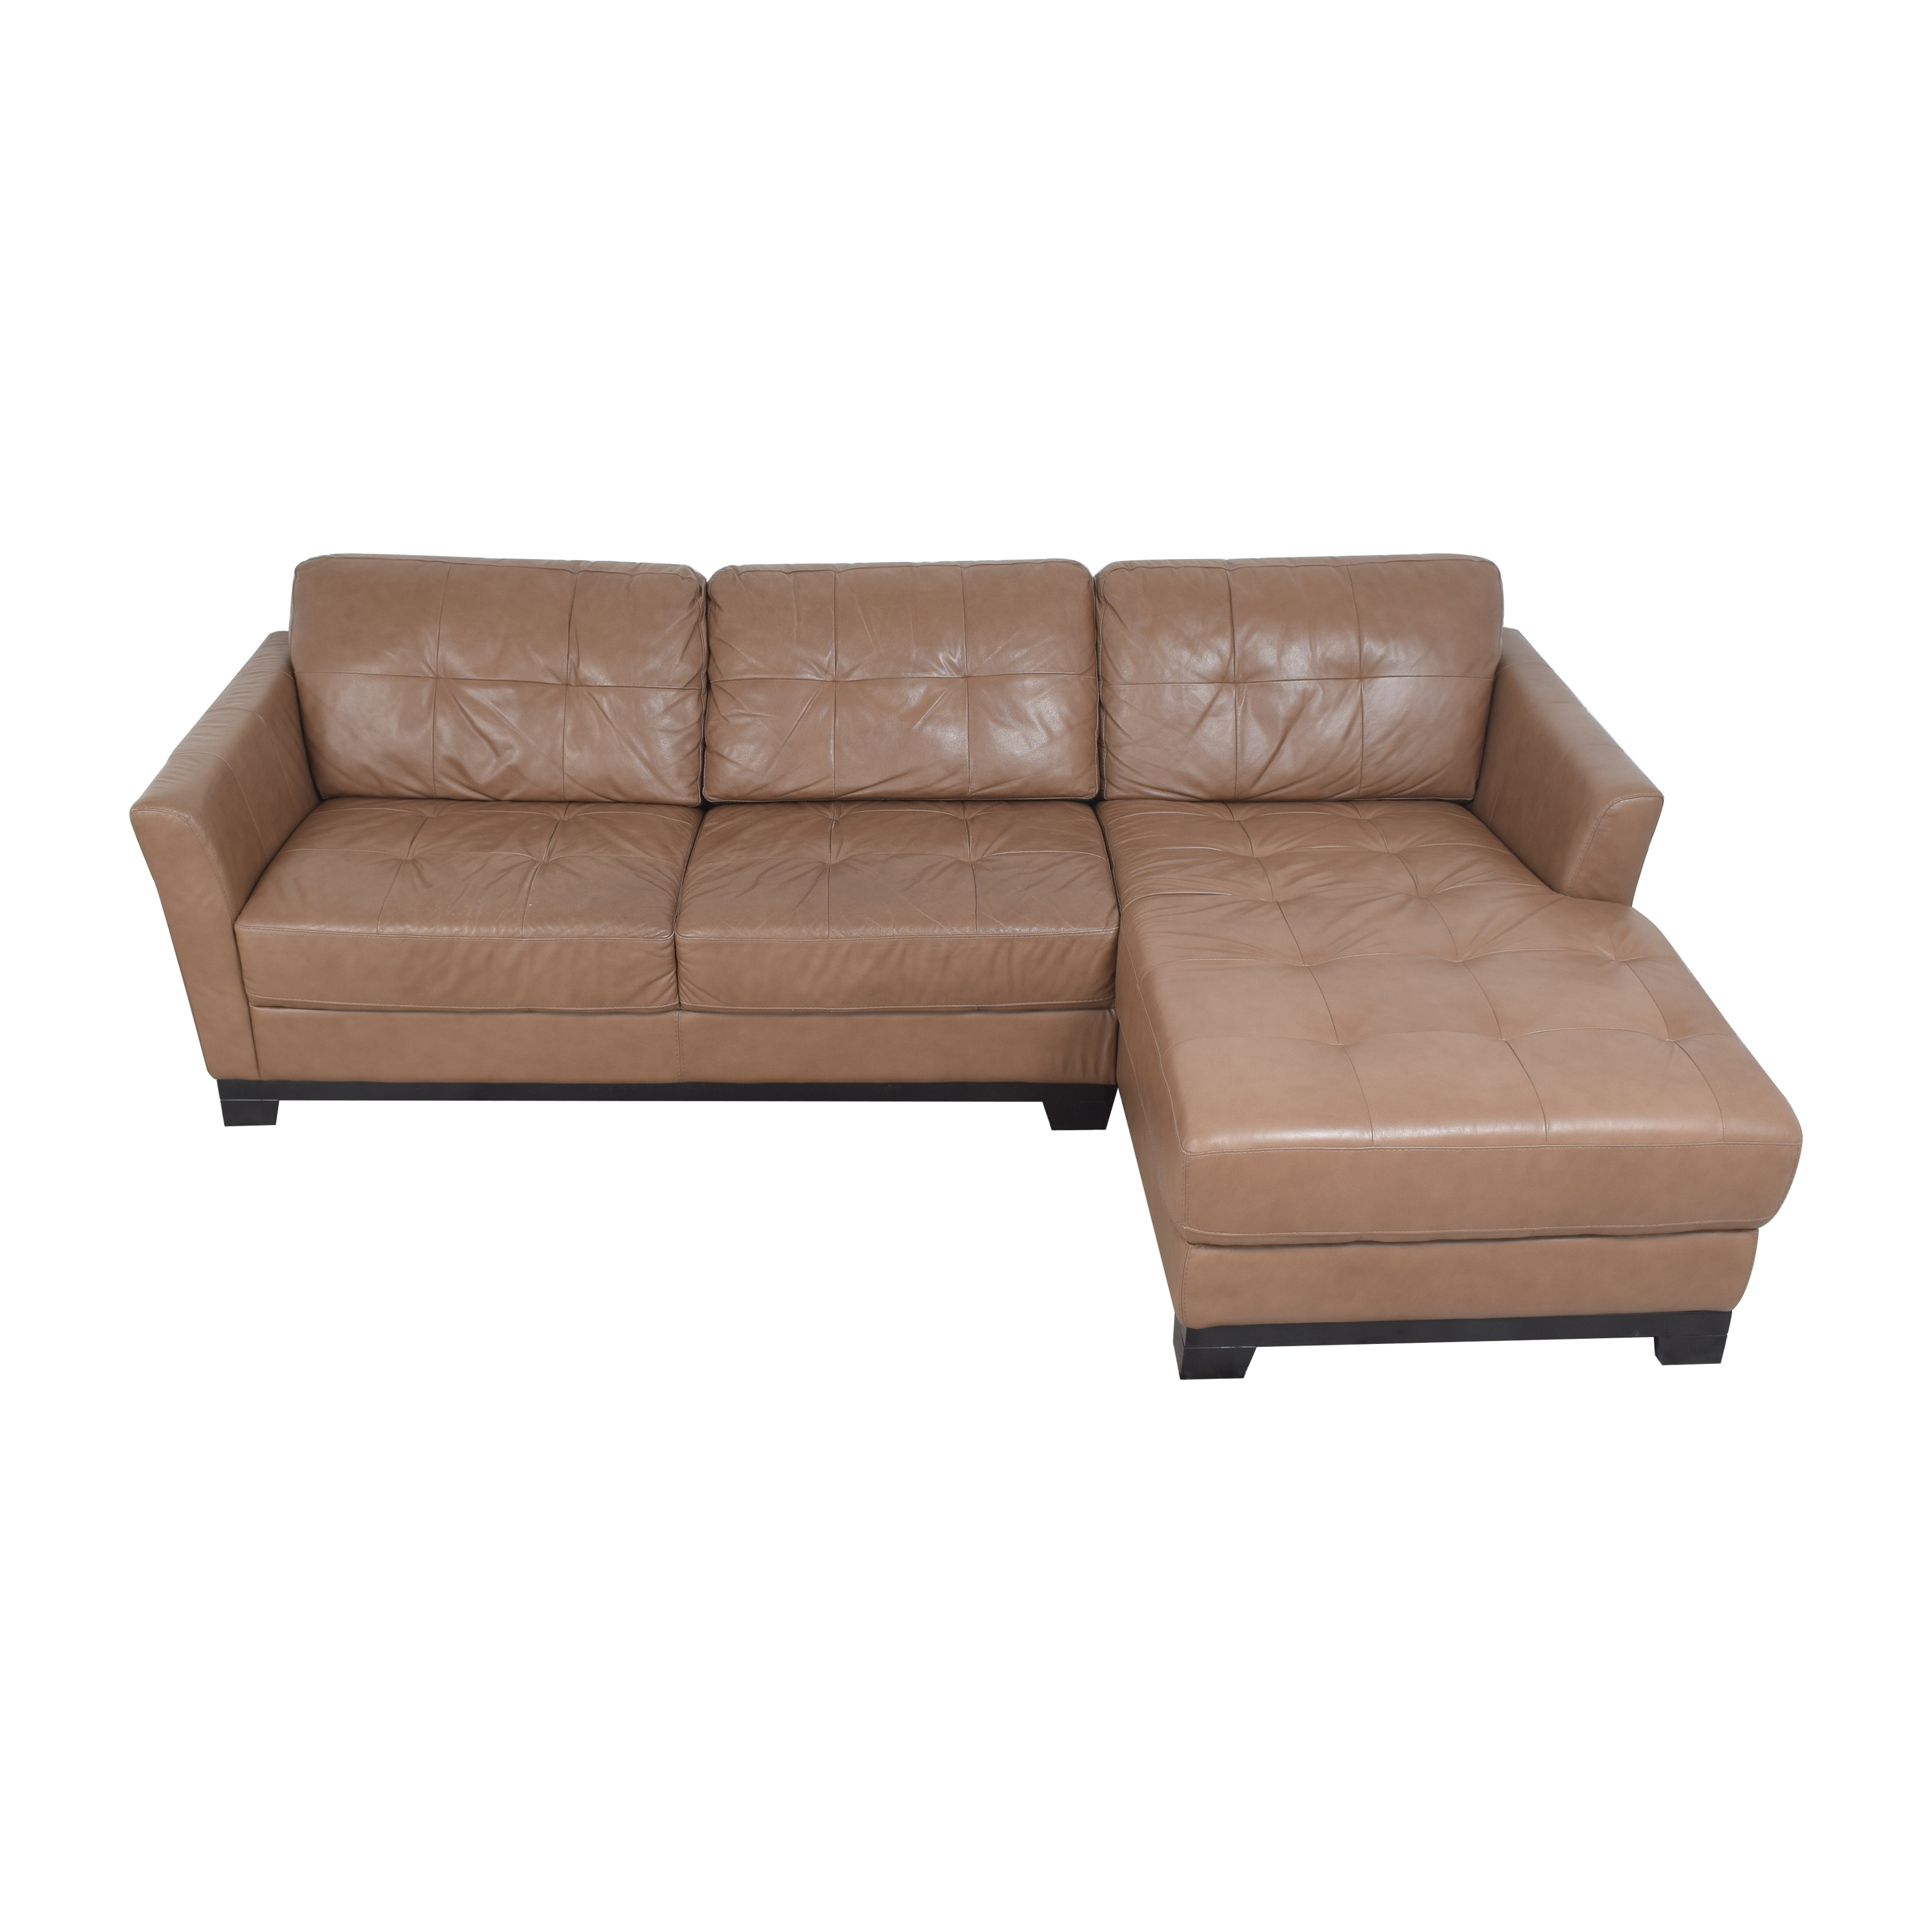 Chateau d'Ax Chateau d'Ax Chaise Sectional Sofa second hand